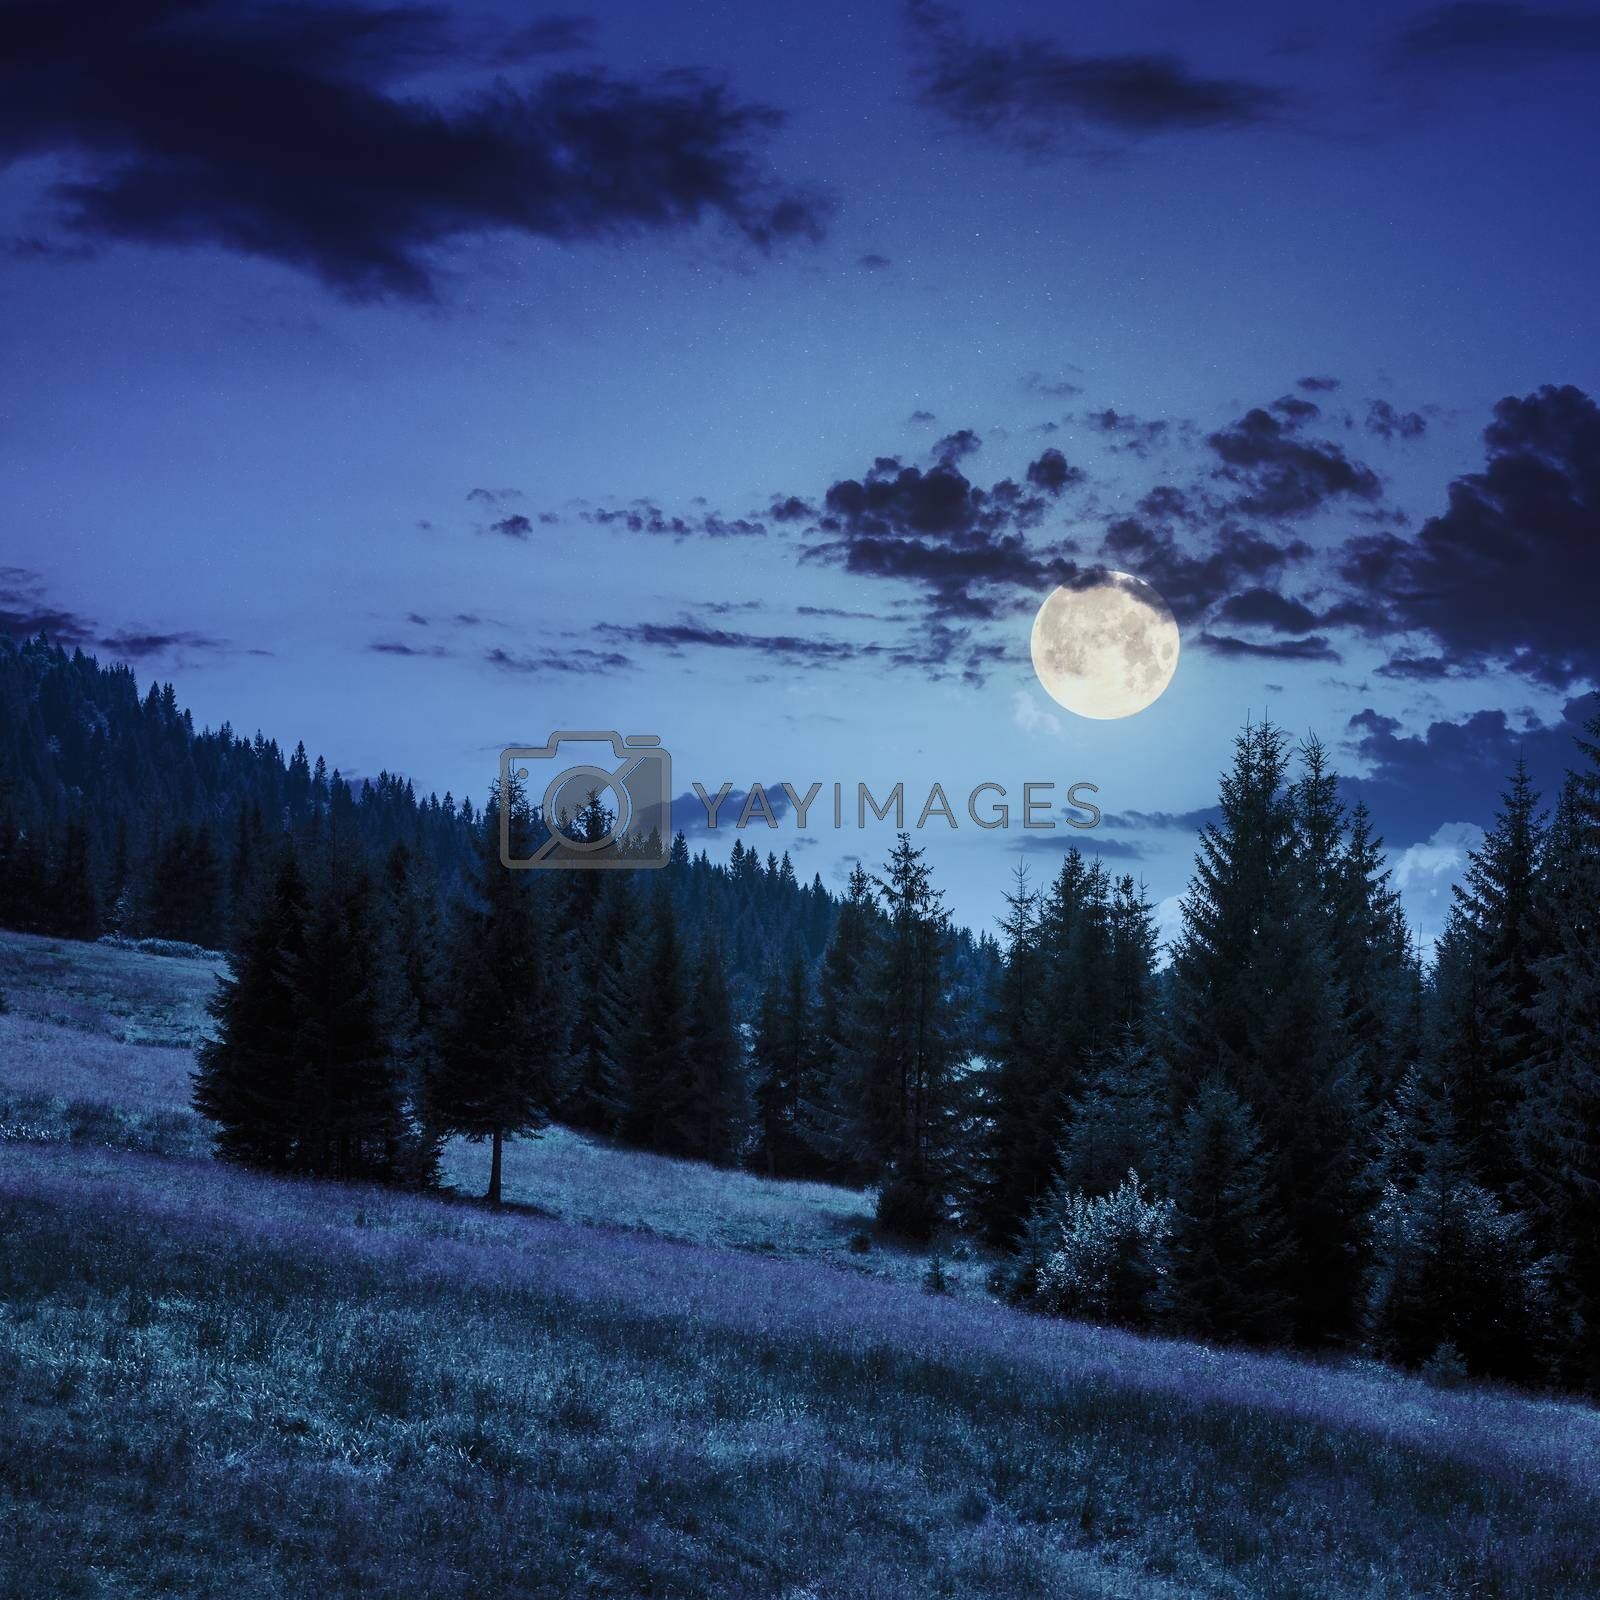 coniferous forest on a  mountain slope in moon light by Pellinni